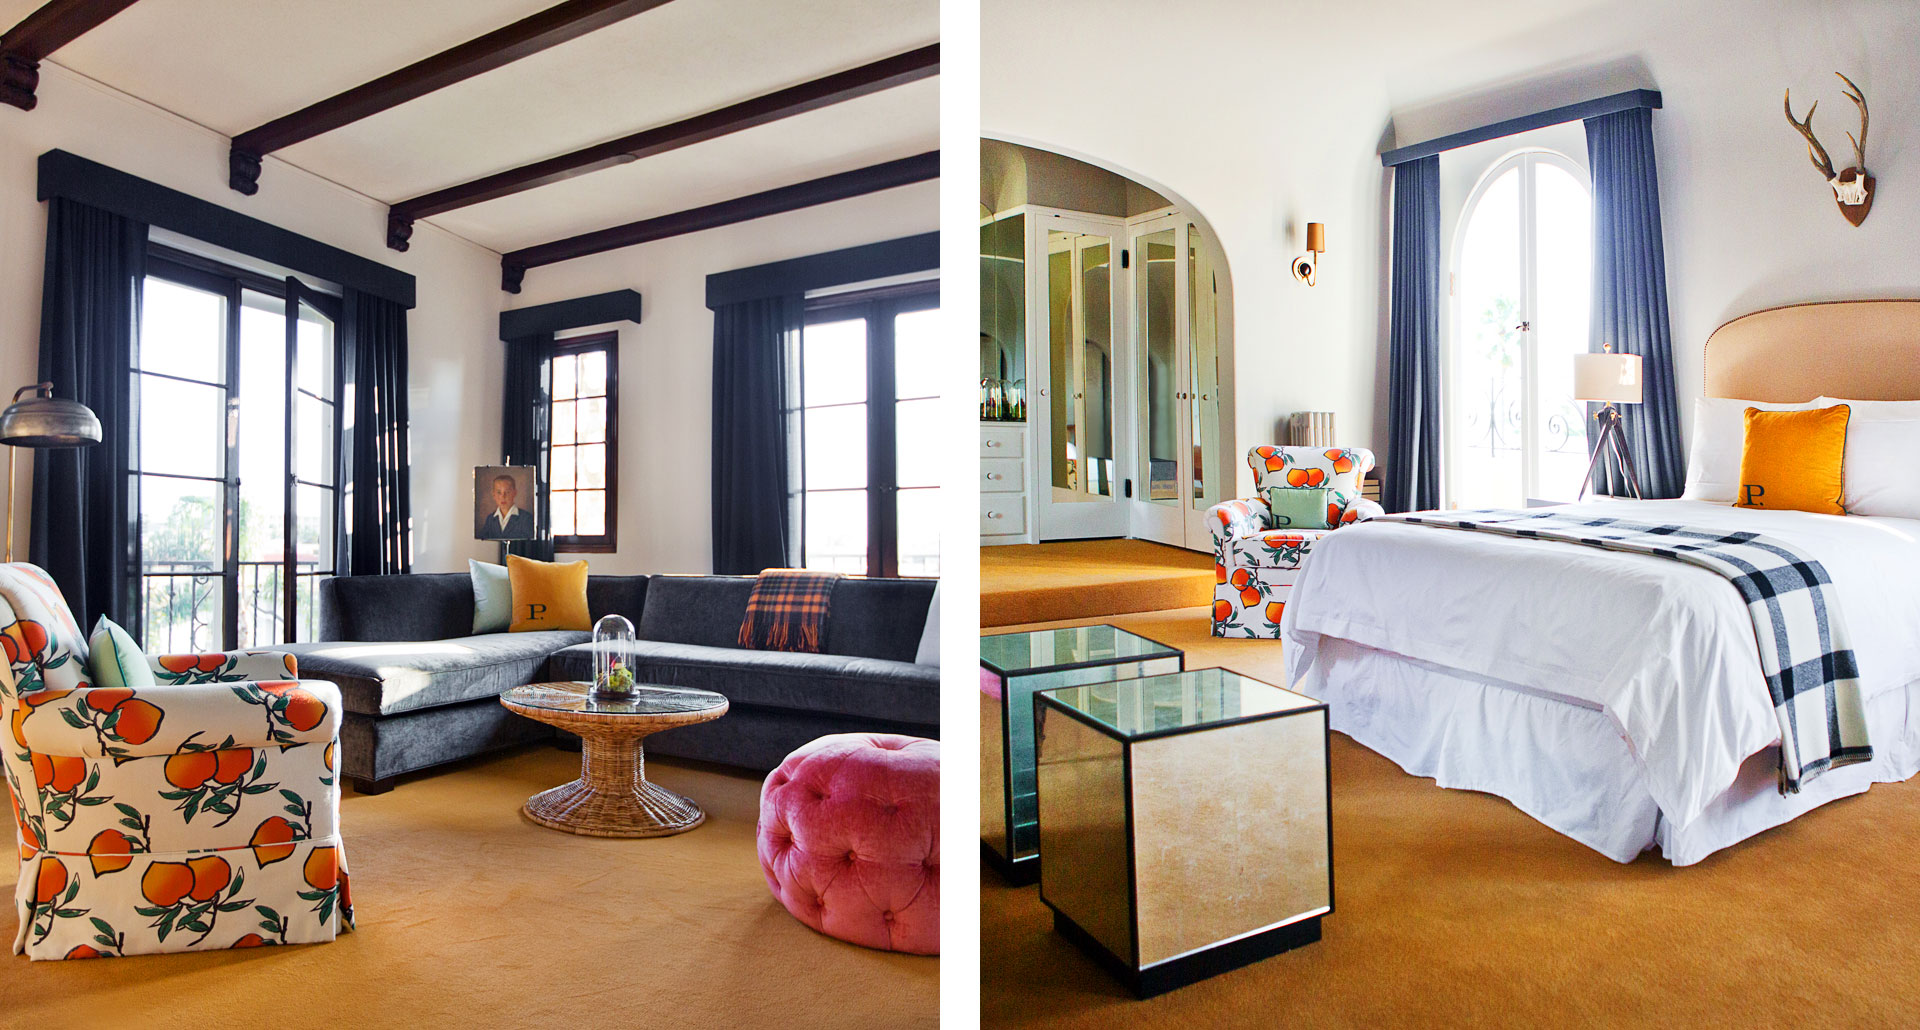 Palihouse Santa Monica - luxury boutique hotel in Los Angeles